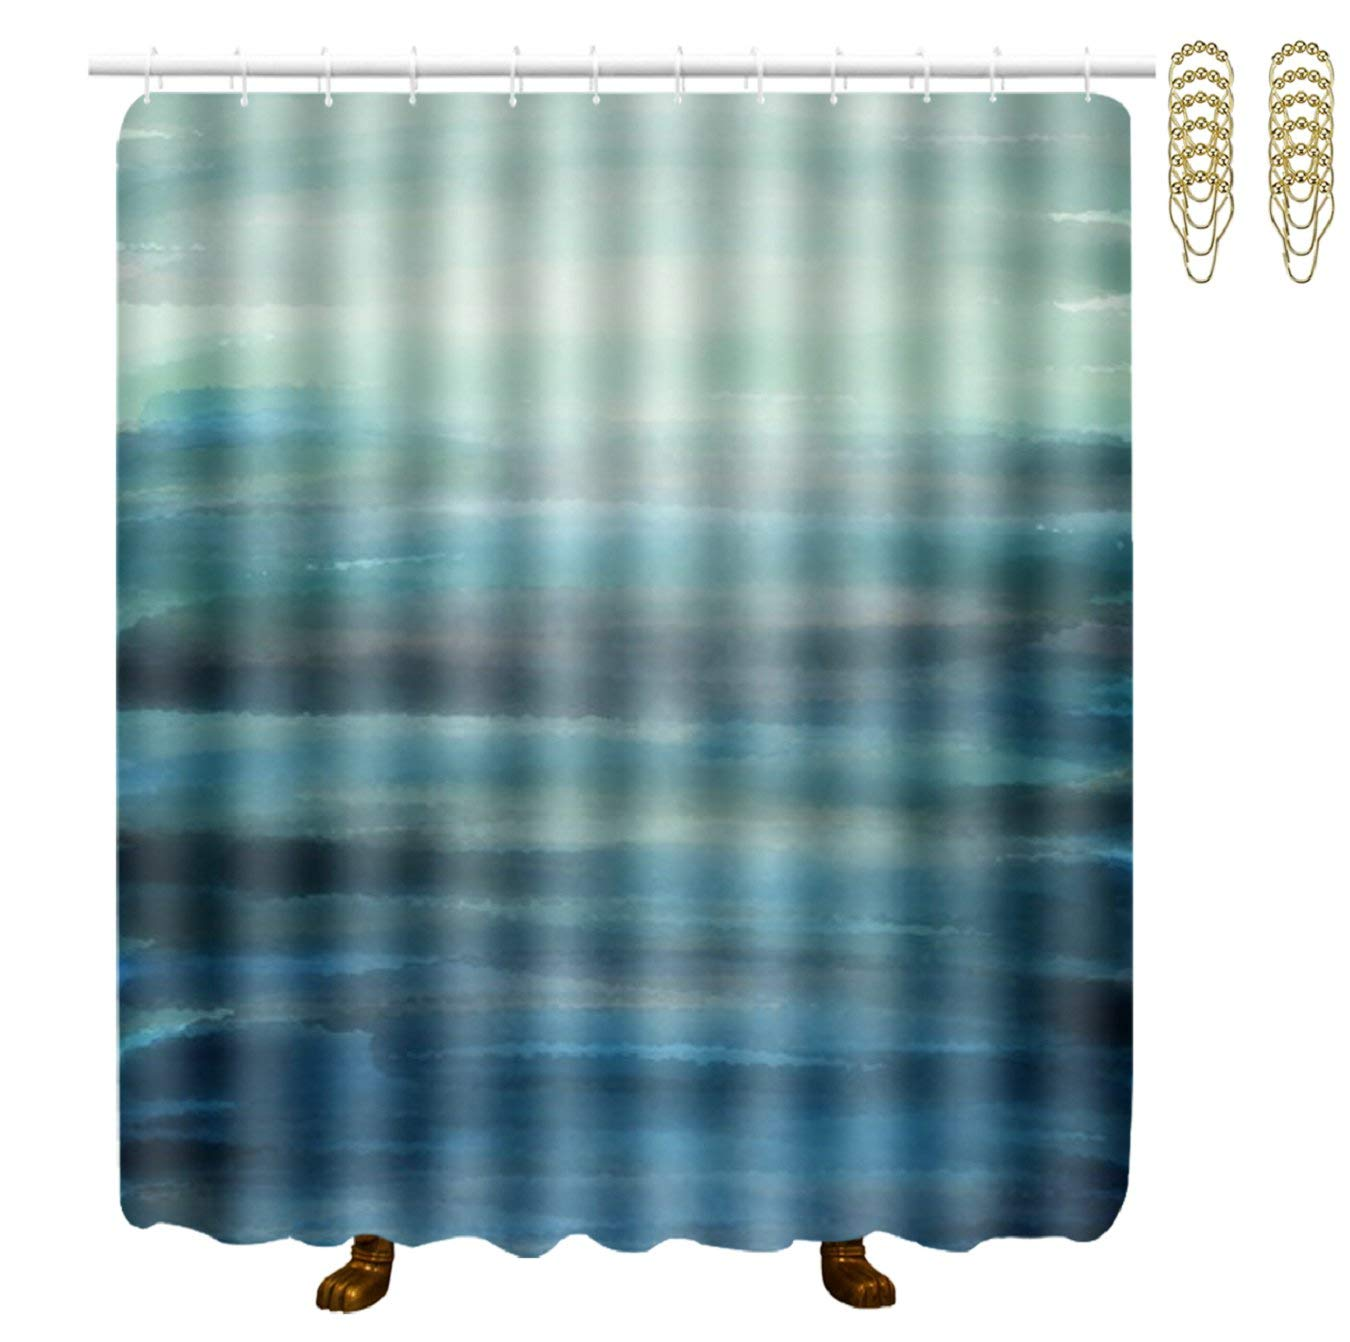 ESTLISS Aqua Teal Blue Sea Ocean Ombre Fabric Shower Curtain Bath Curtains - 70x70 inches Eco-Friendly Waterproof Bathroom Curtain, Bathroom Accessories Ideas Kitchen Window Curtain